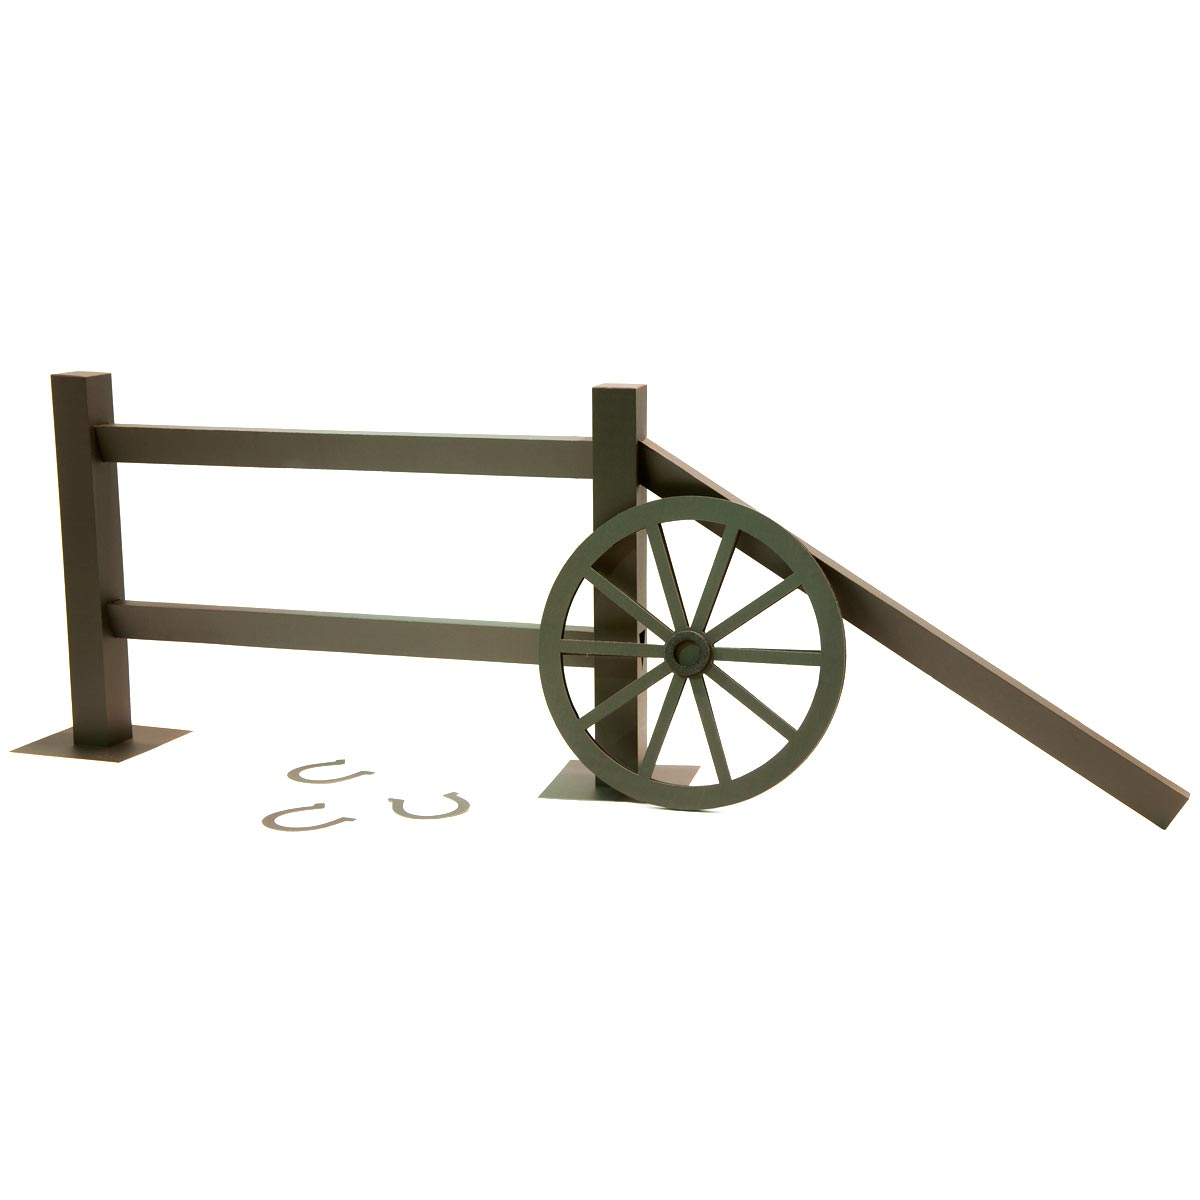 Falling For You Fence (set of 2) and Wagon Wheel Kit